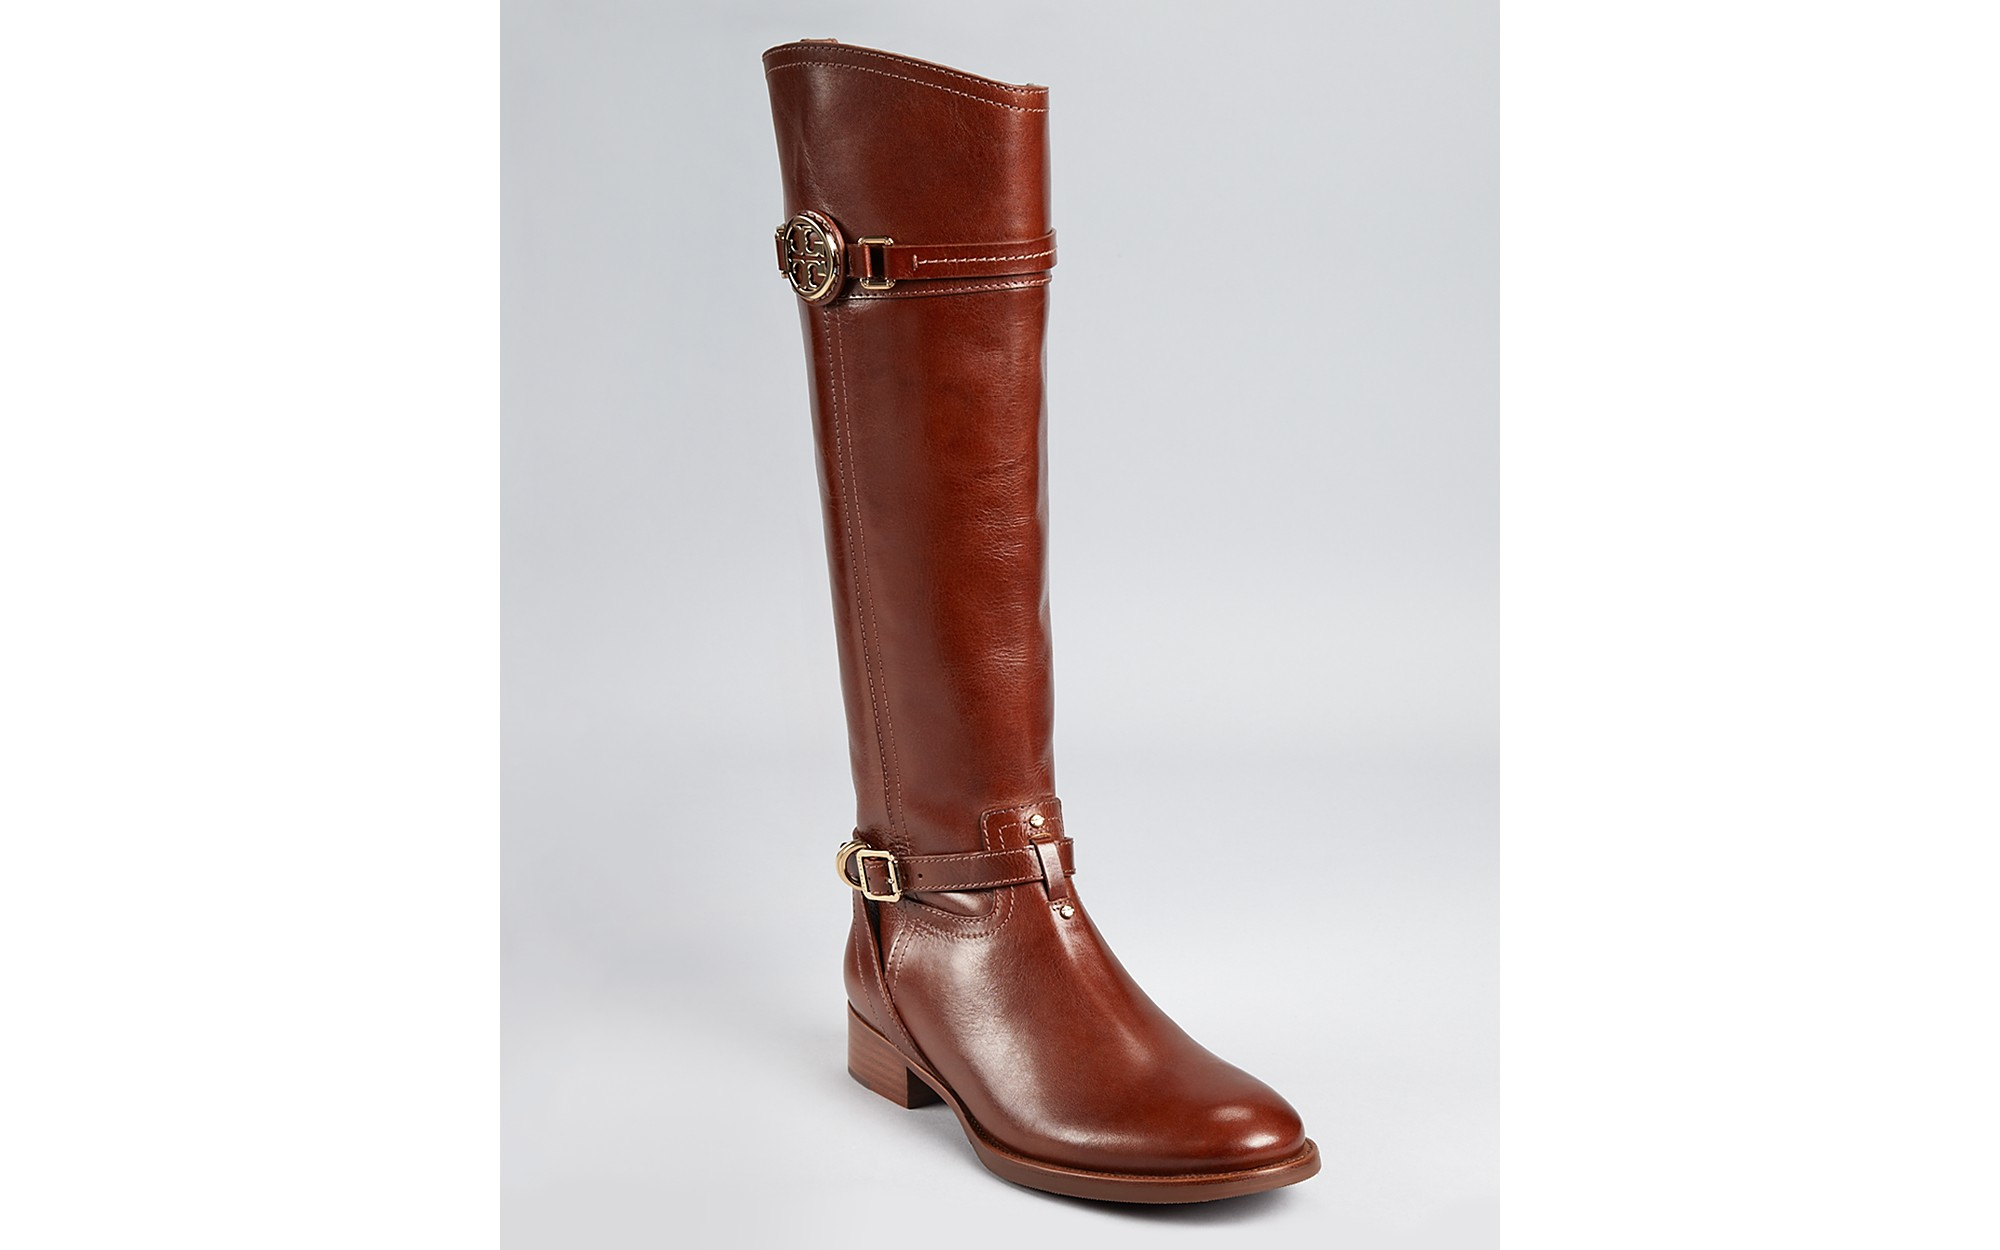 Tory burch Calista Leather Riding Boots in Brown | Lyst